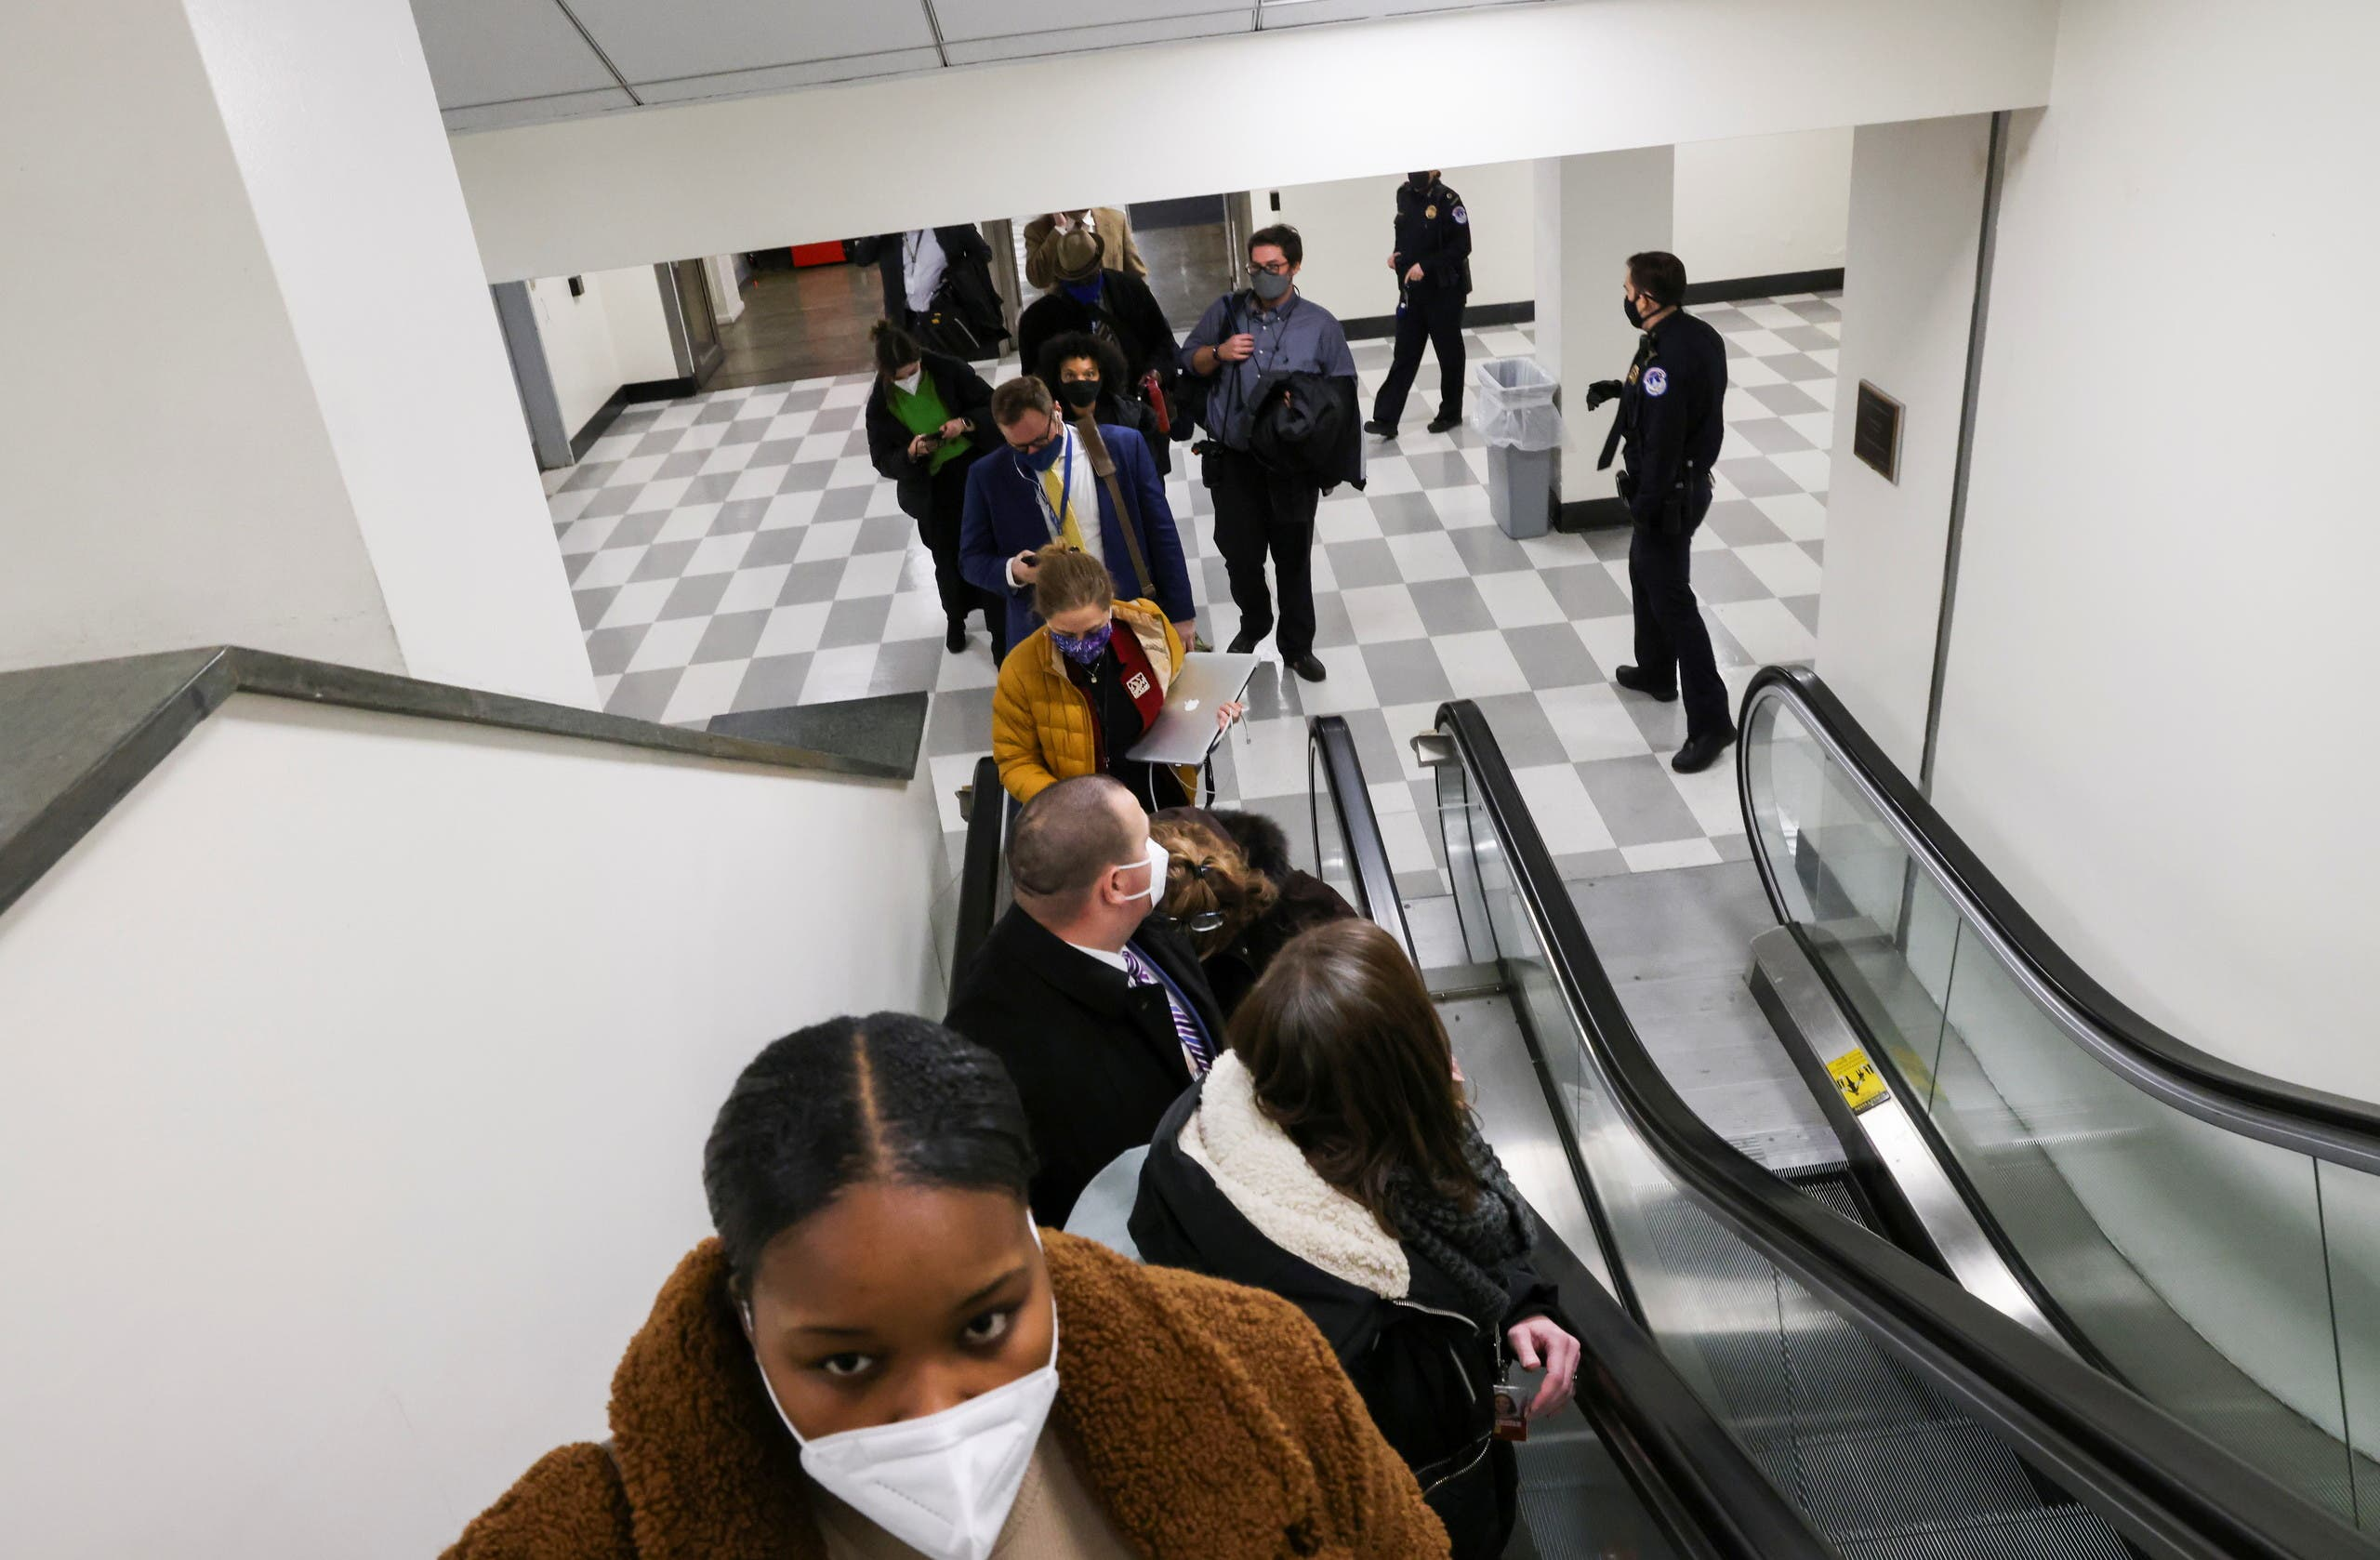 US Capitol Police evacuate journalists and House press staff members from the Capitol to a connected office building, in Washington, US, January 6, 2021. (Reuters)